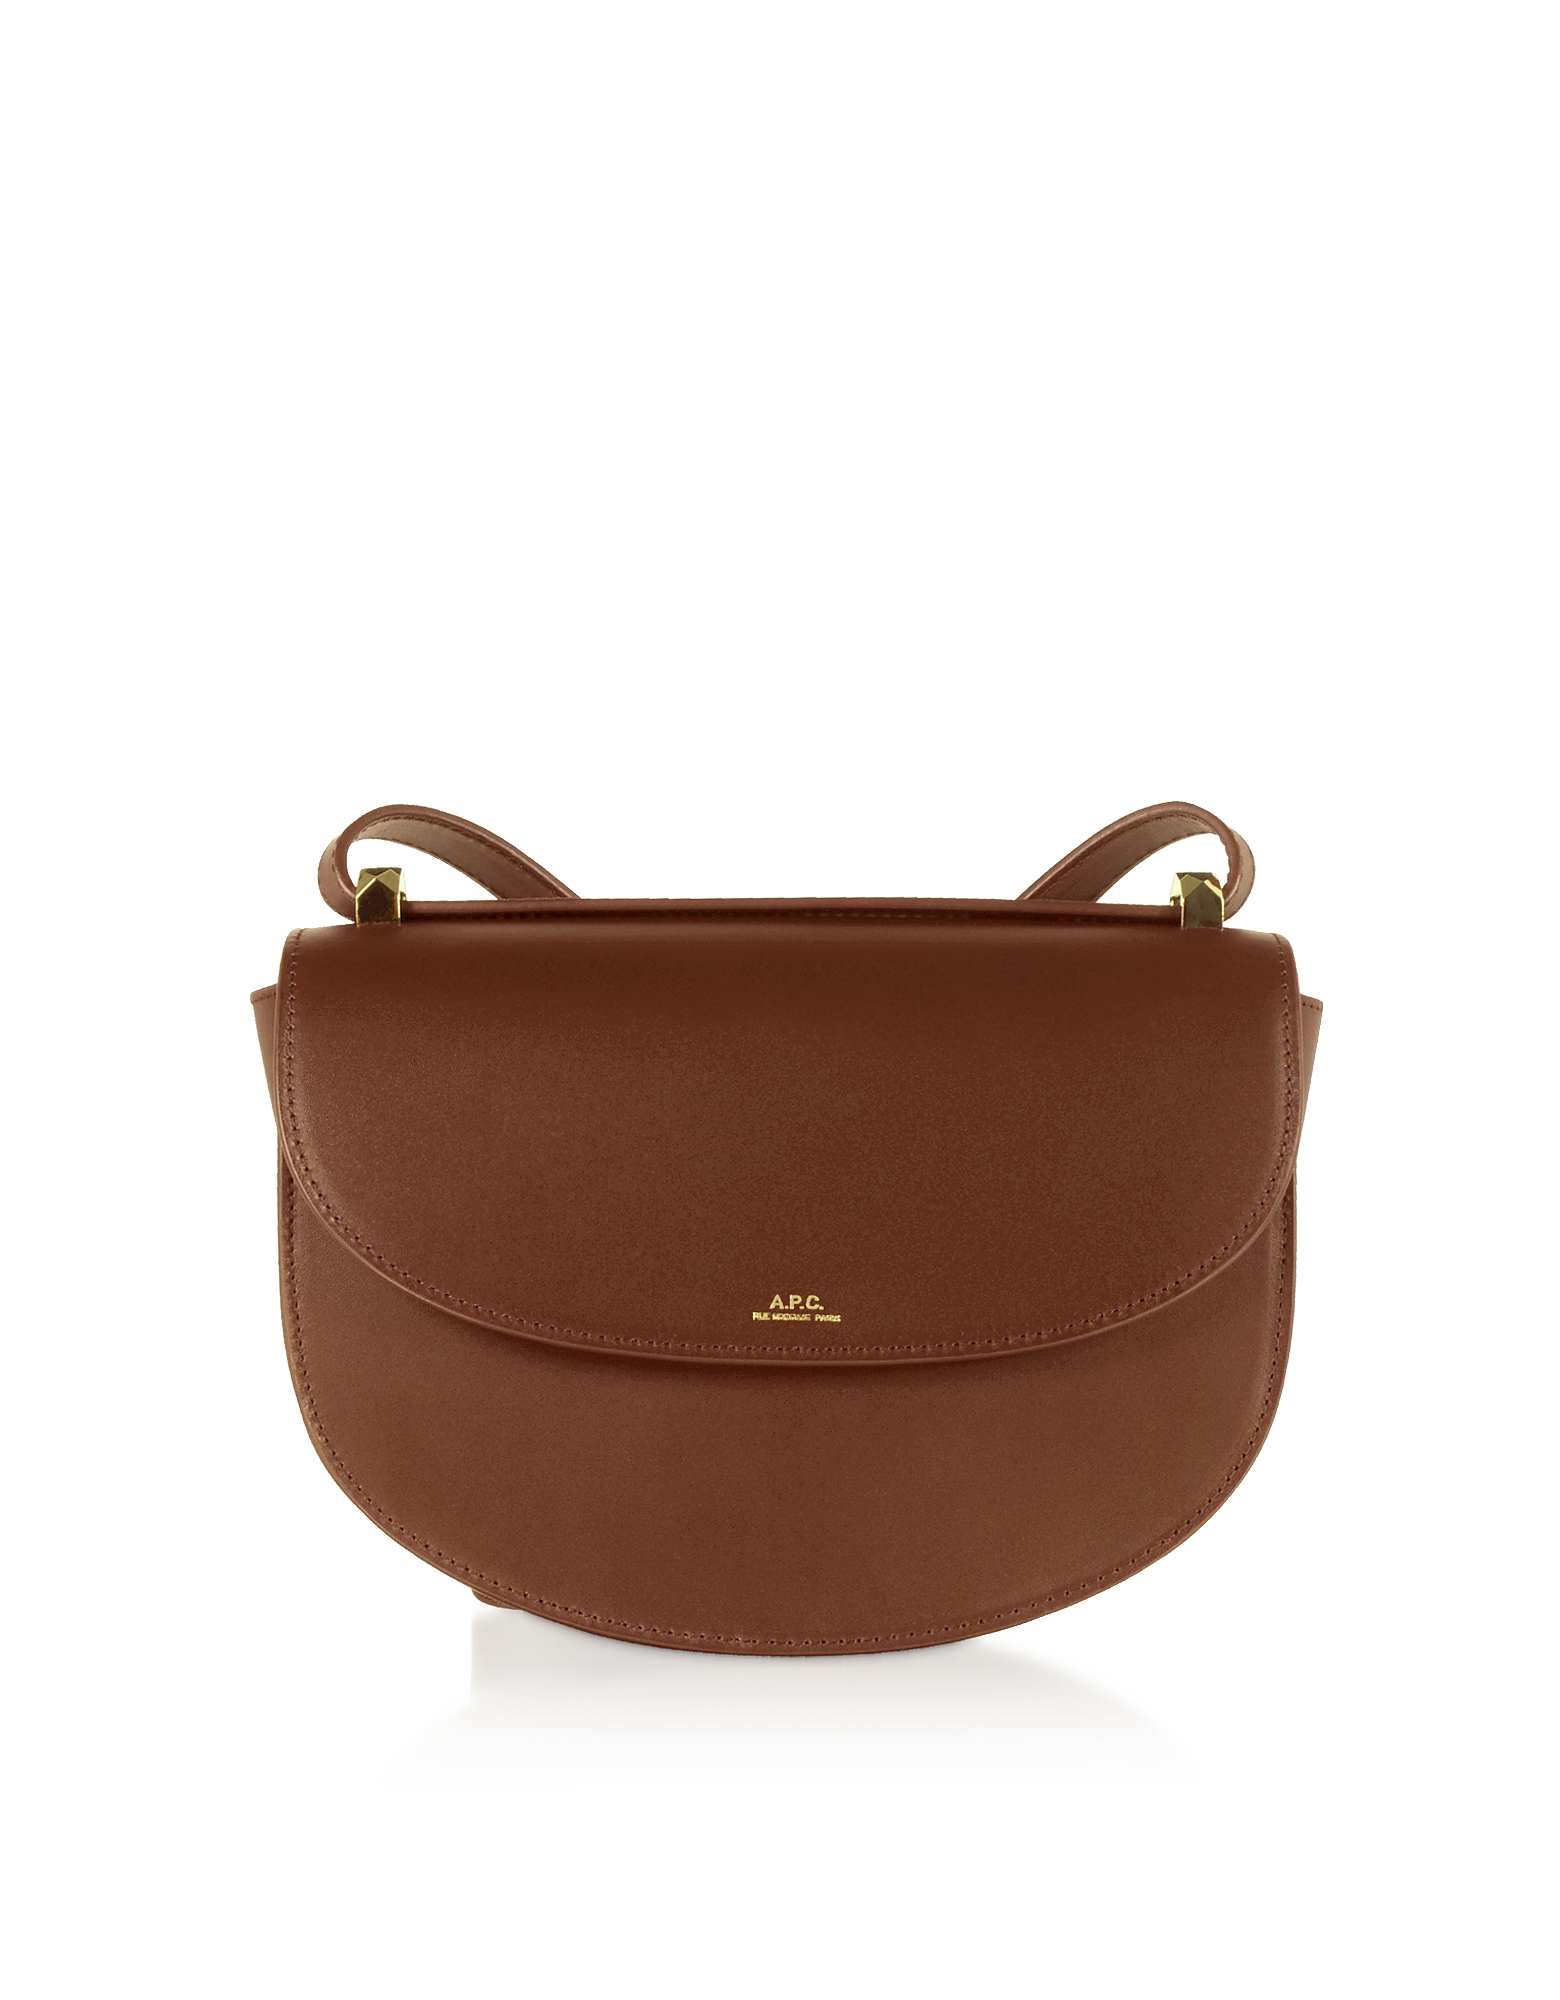 A.P.C. Designer Handbags, Hazel Geneve Leather Crossbody Bag